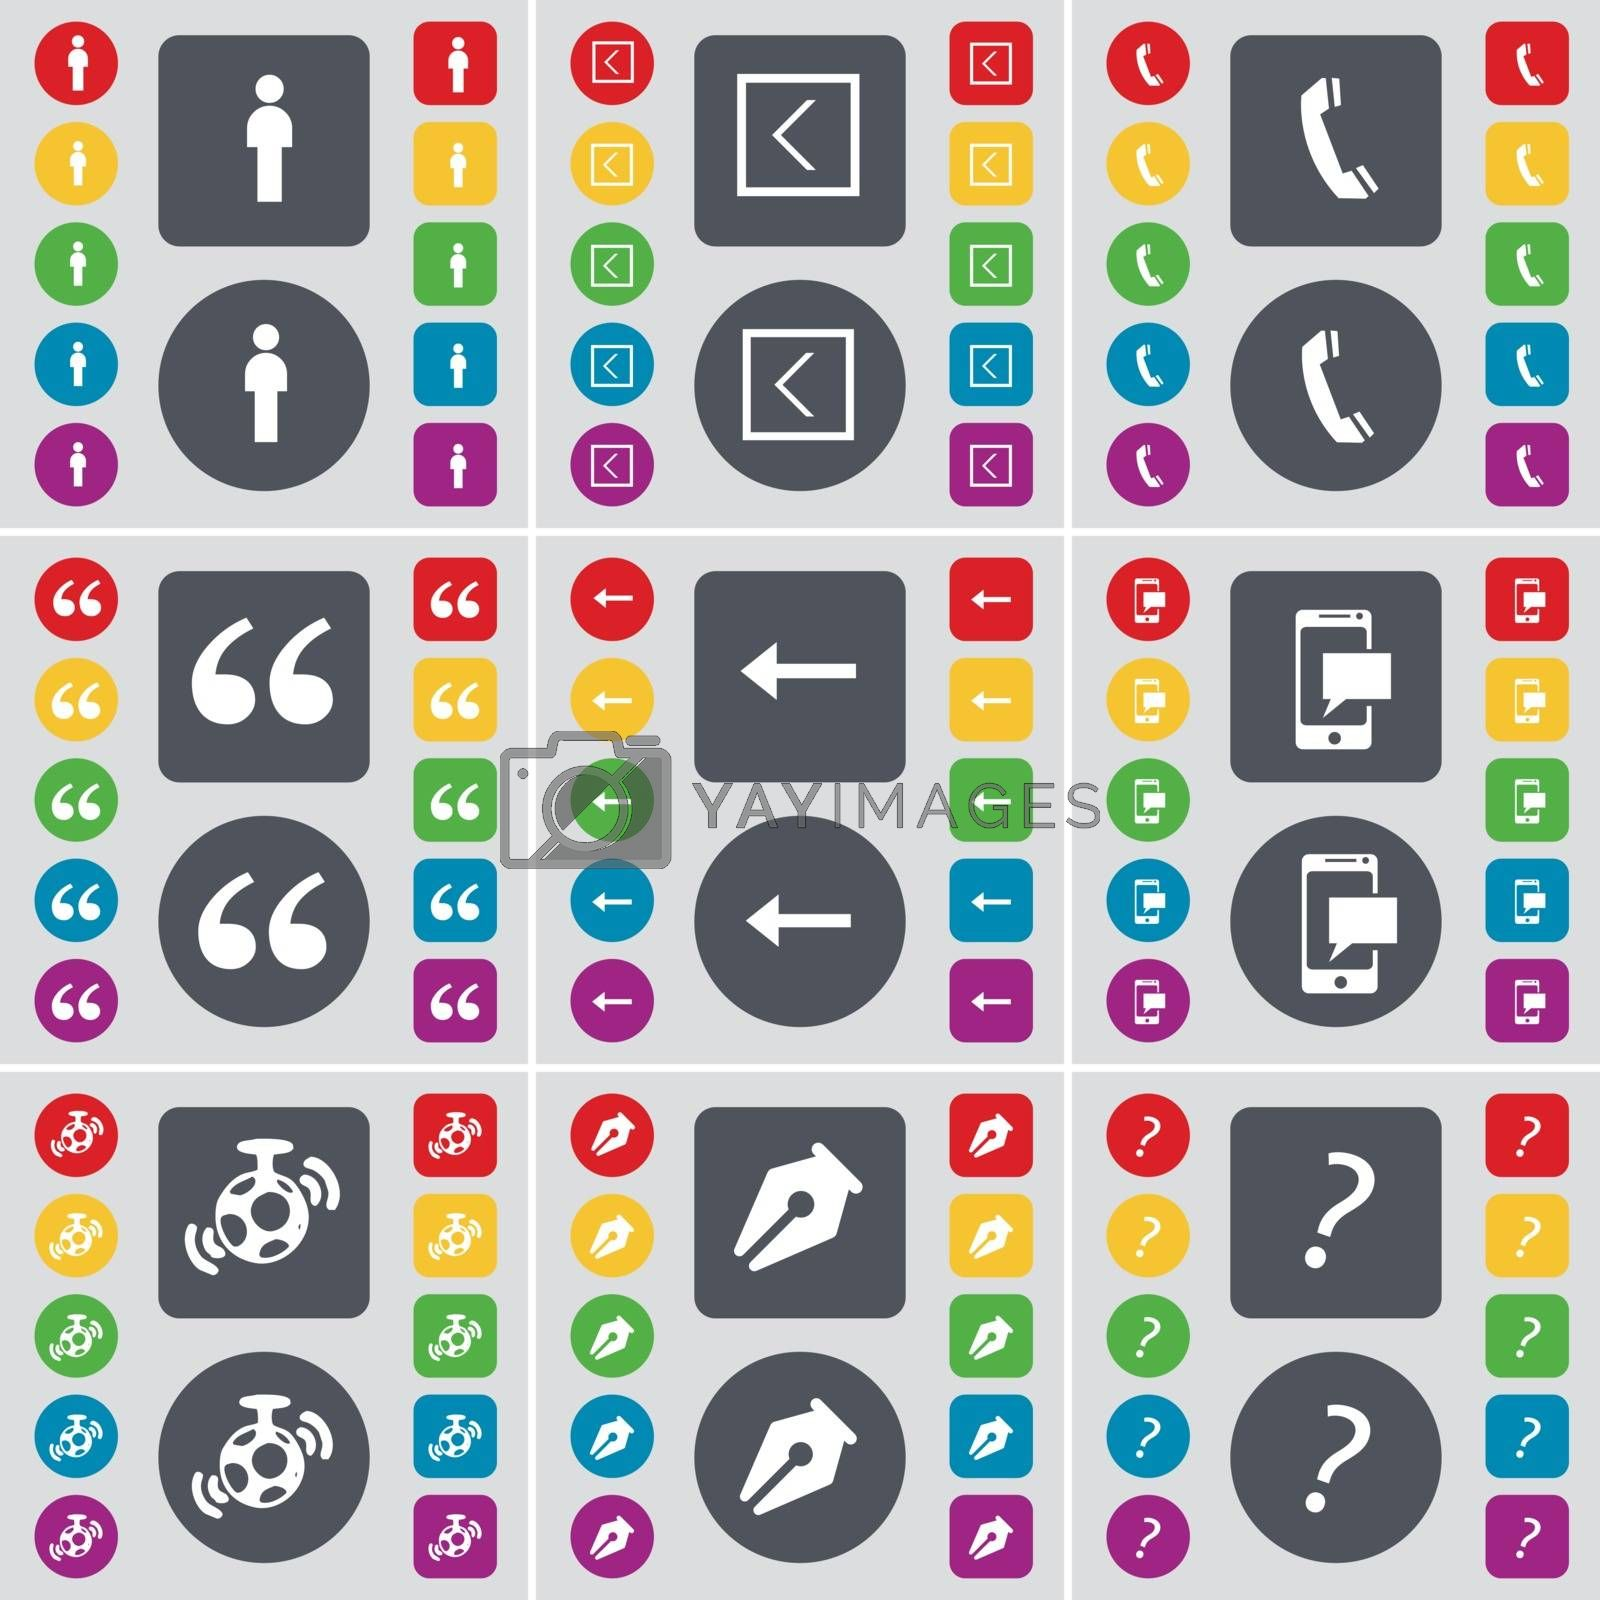 Royalty free image of Silhouette, Arrow left, Receiver, Quoting mark, SMS, Speaker, Ink pen, Question mark icon symbol. A large set of flat, colored buttons for your design. Vector by serhii_lohvyniuk